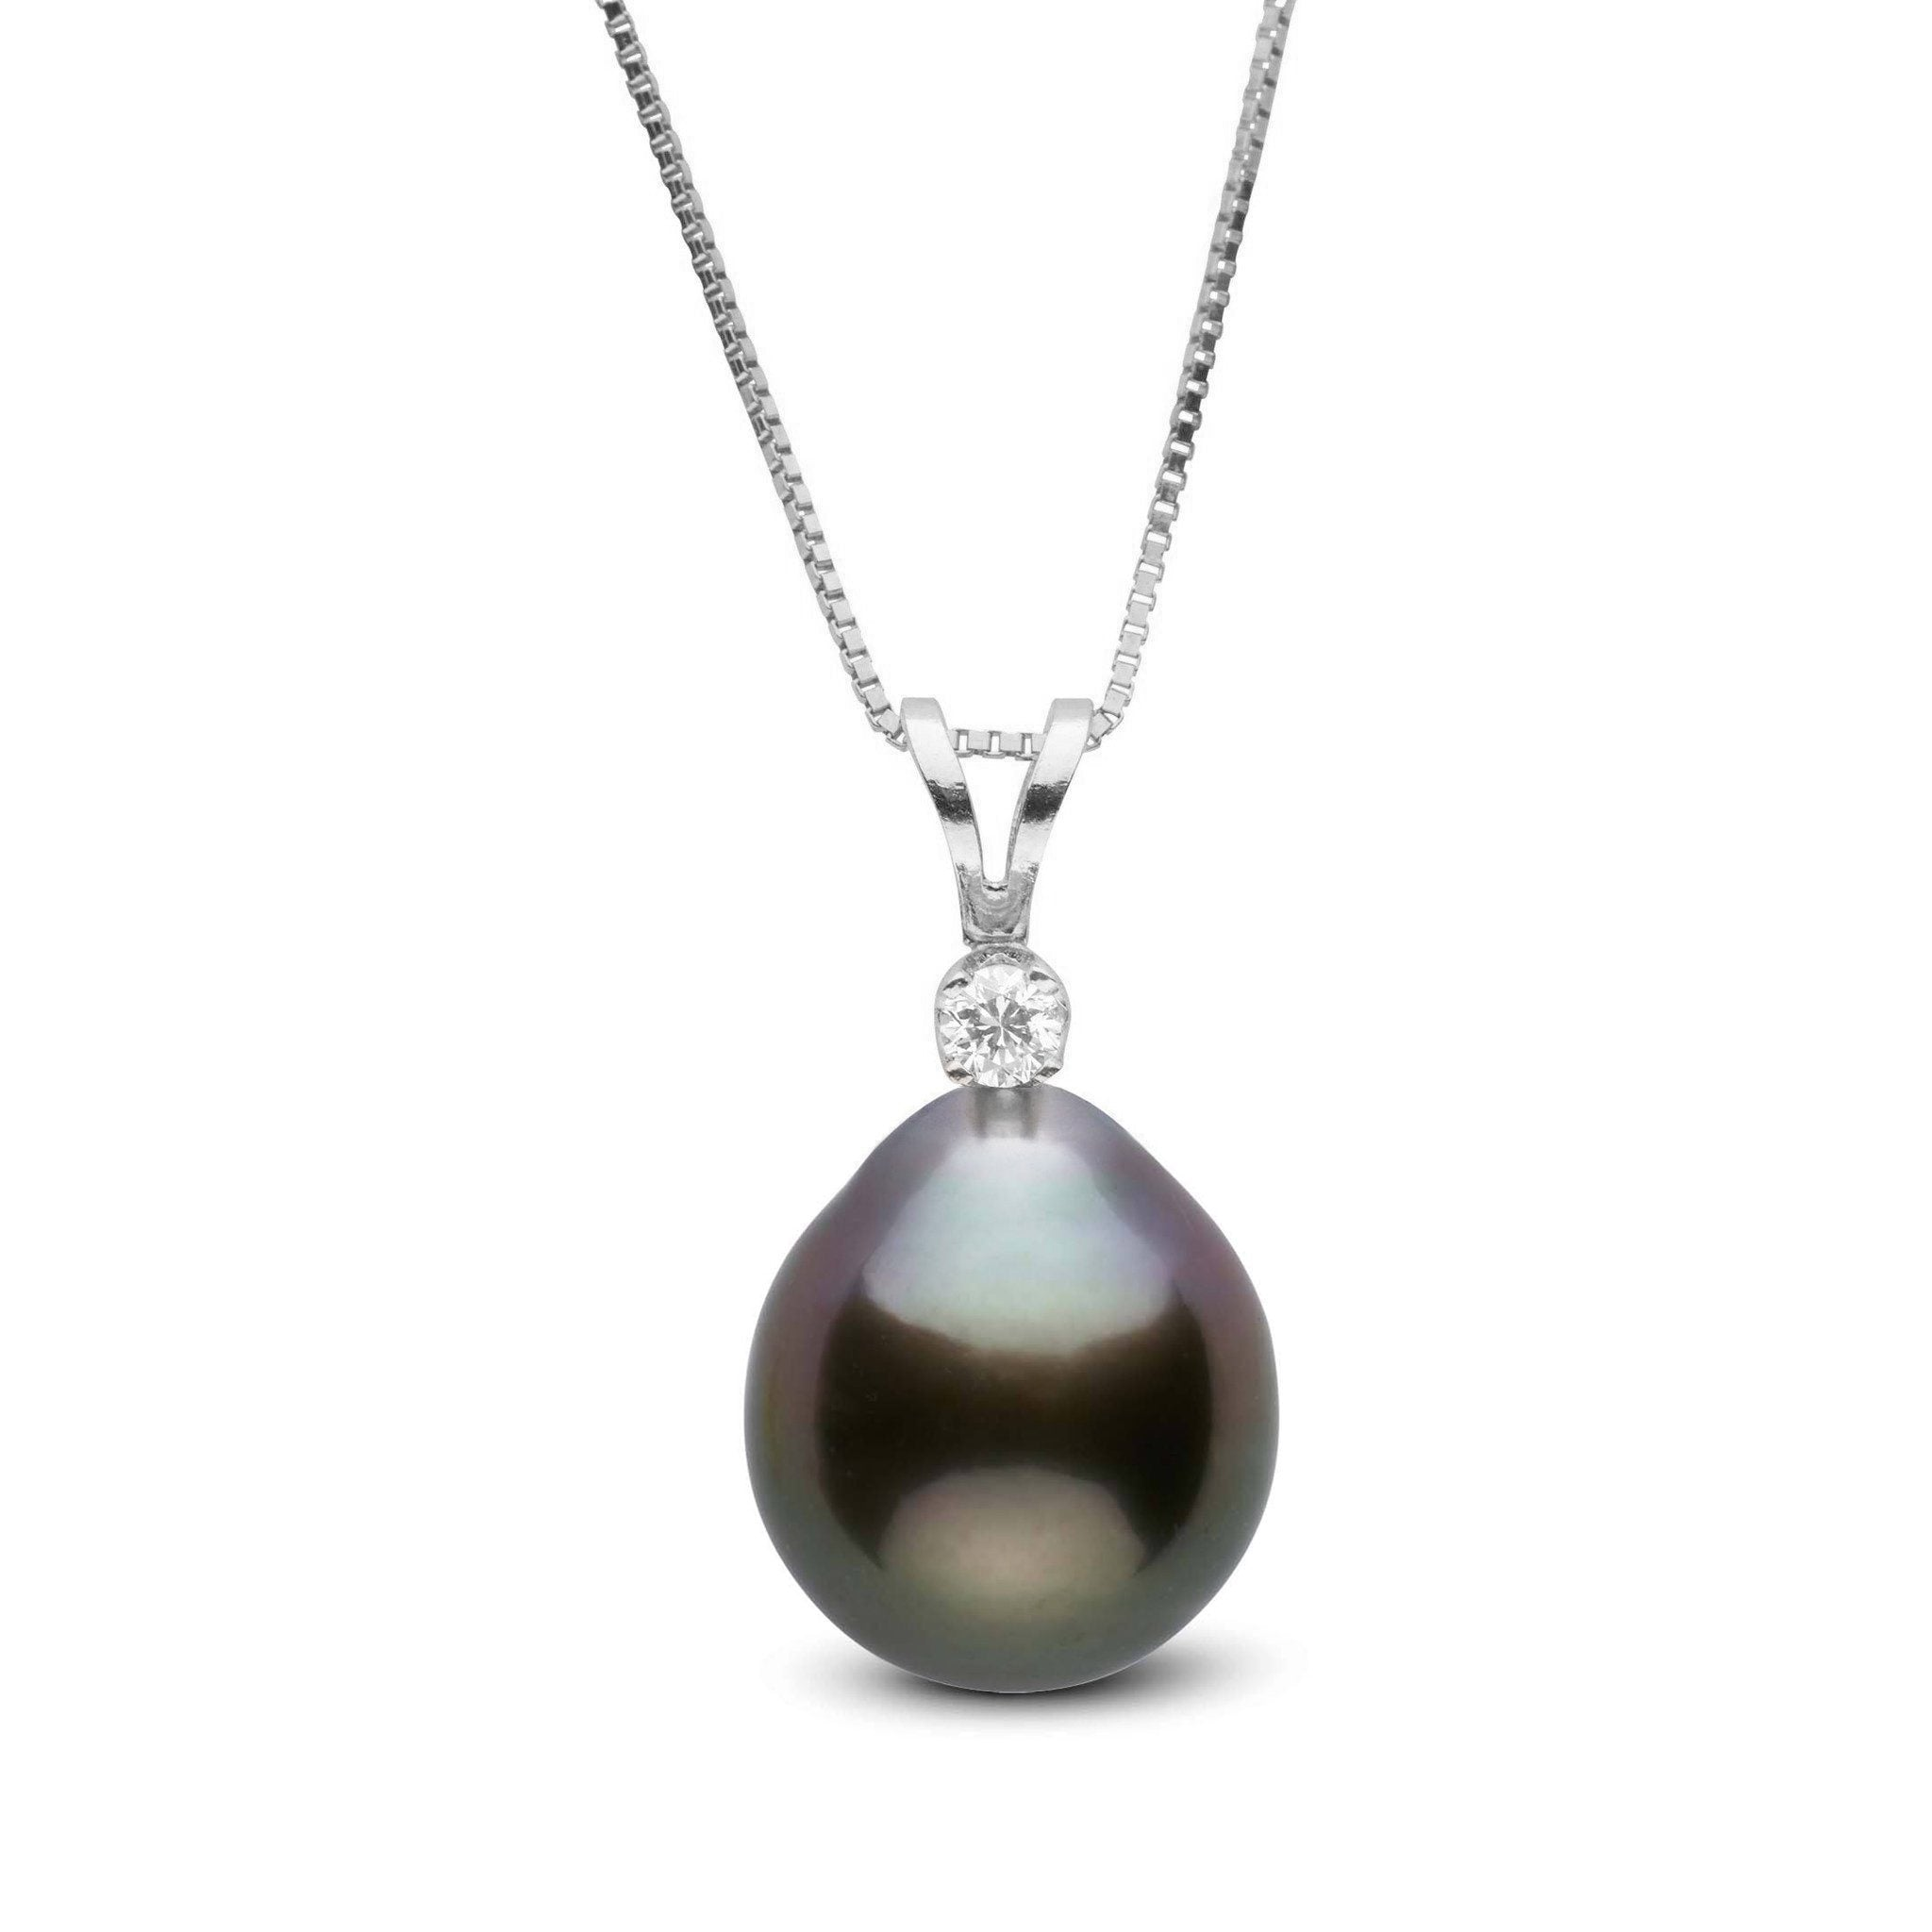 Harmony Collection 10.0-11.0 mm Drop Tahitian Pearl & Diamond Pendant